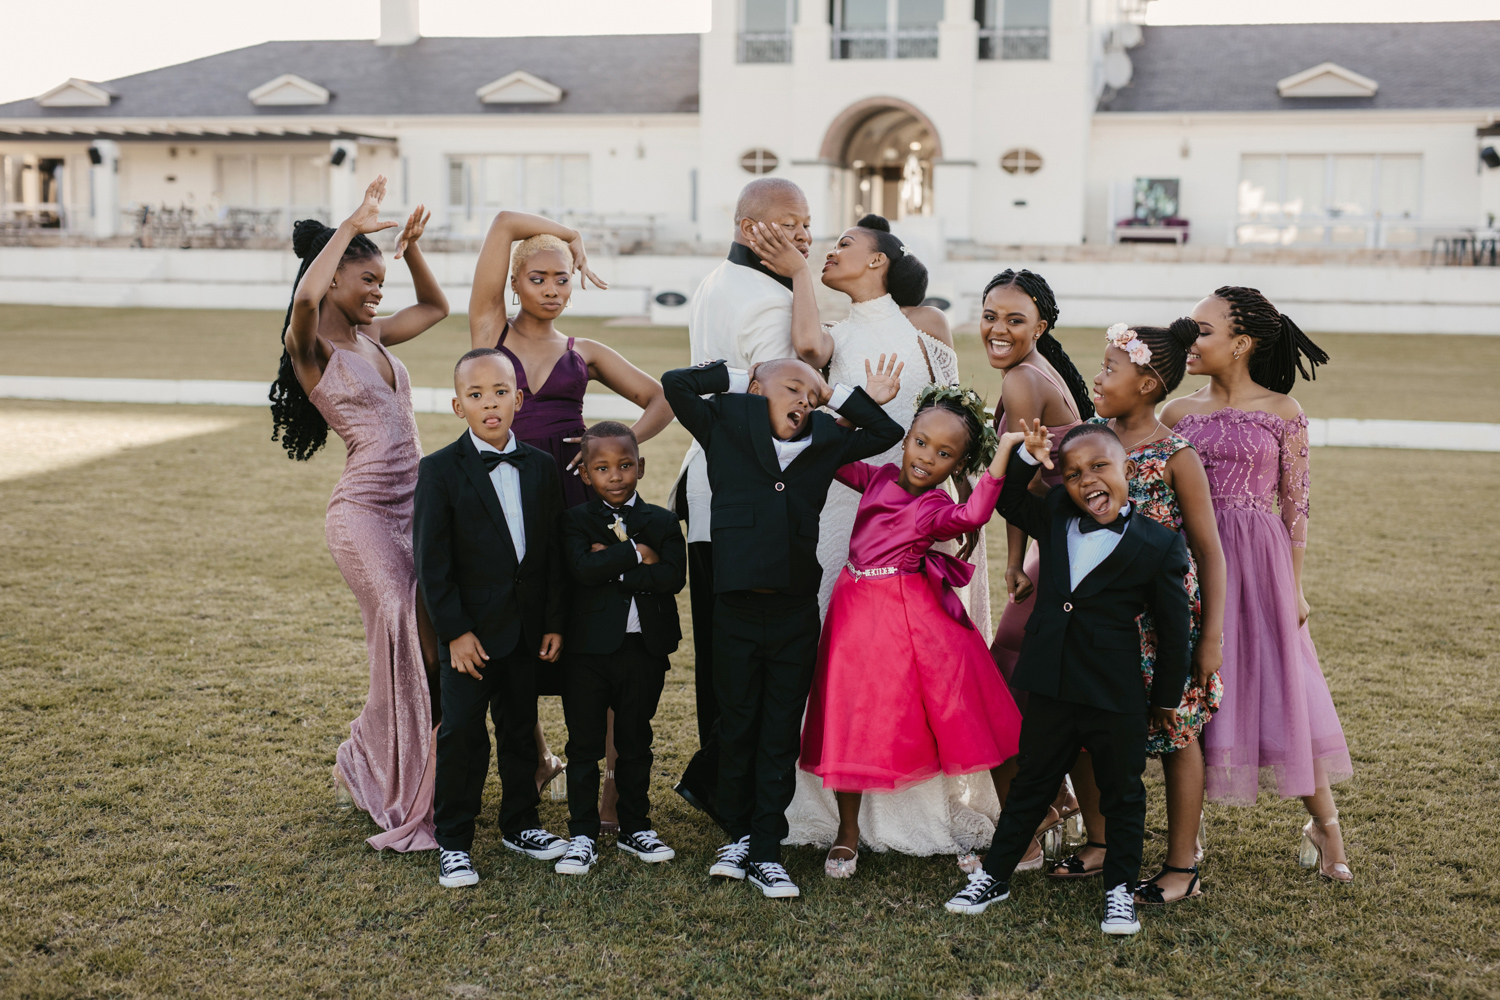 an image taken by Vividblue of the bridal party and kids doing a funny pose.